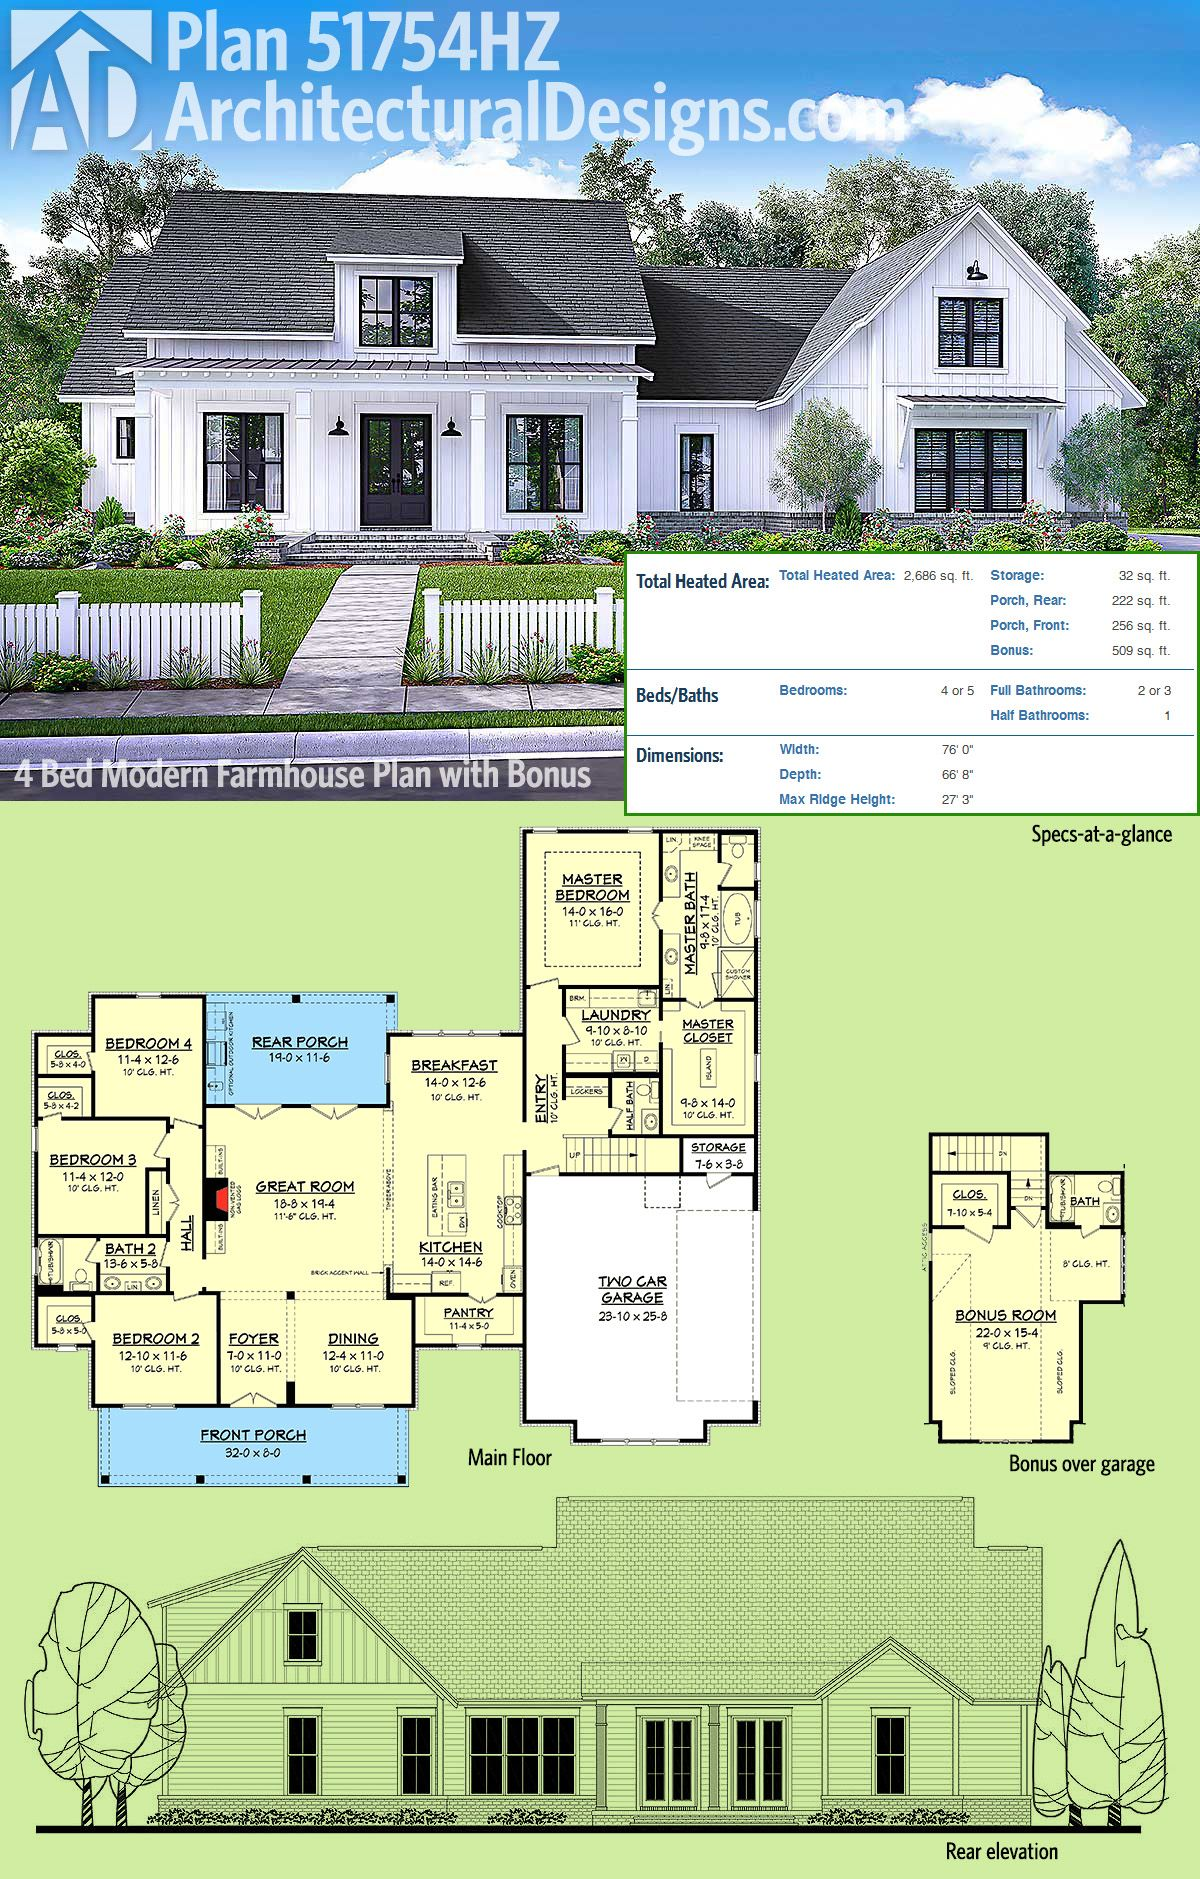 Plan 51754hz modern farmhouse plan with bonus room for 4 bedroom farmhouse plans